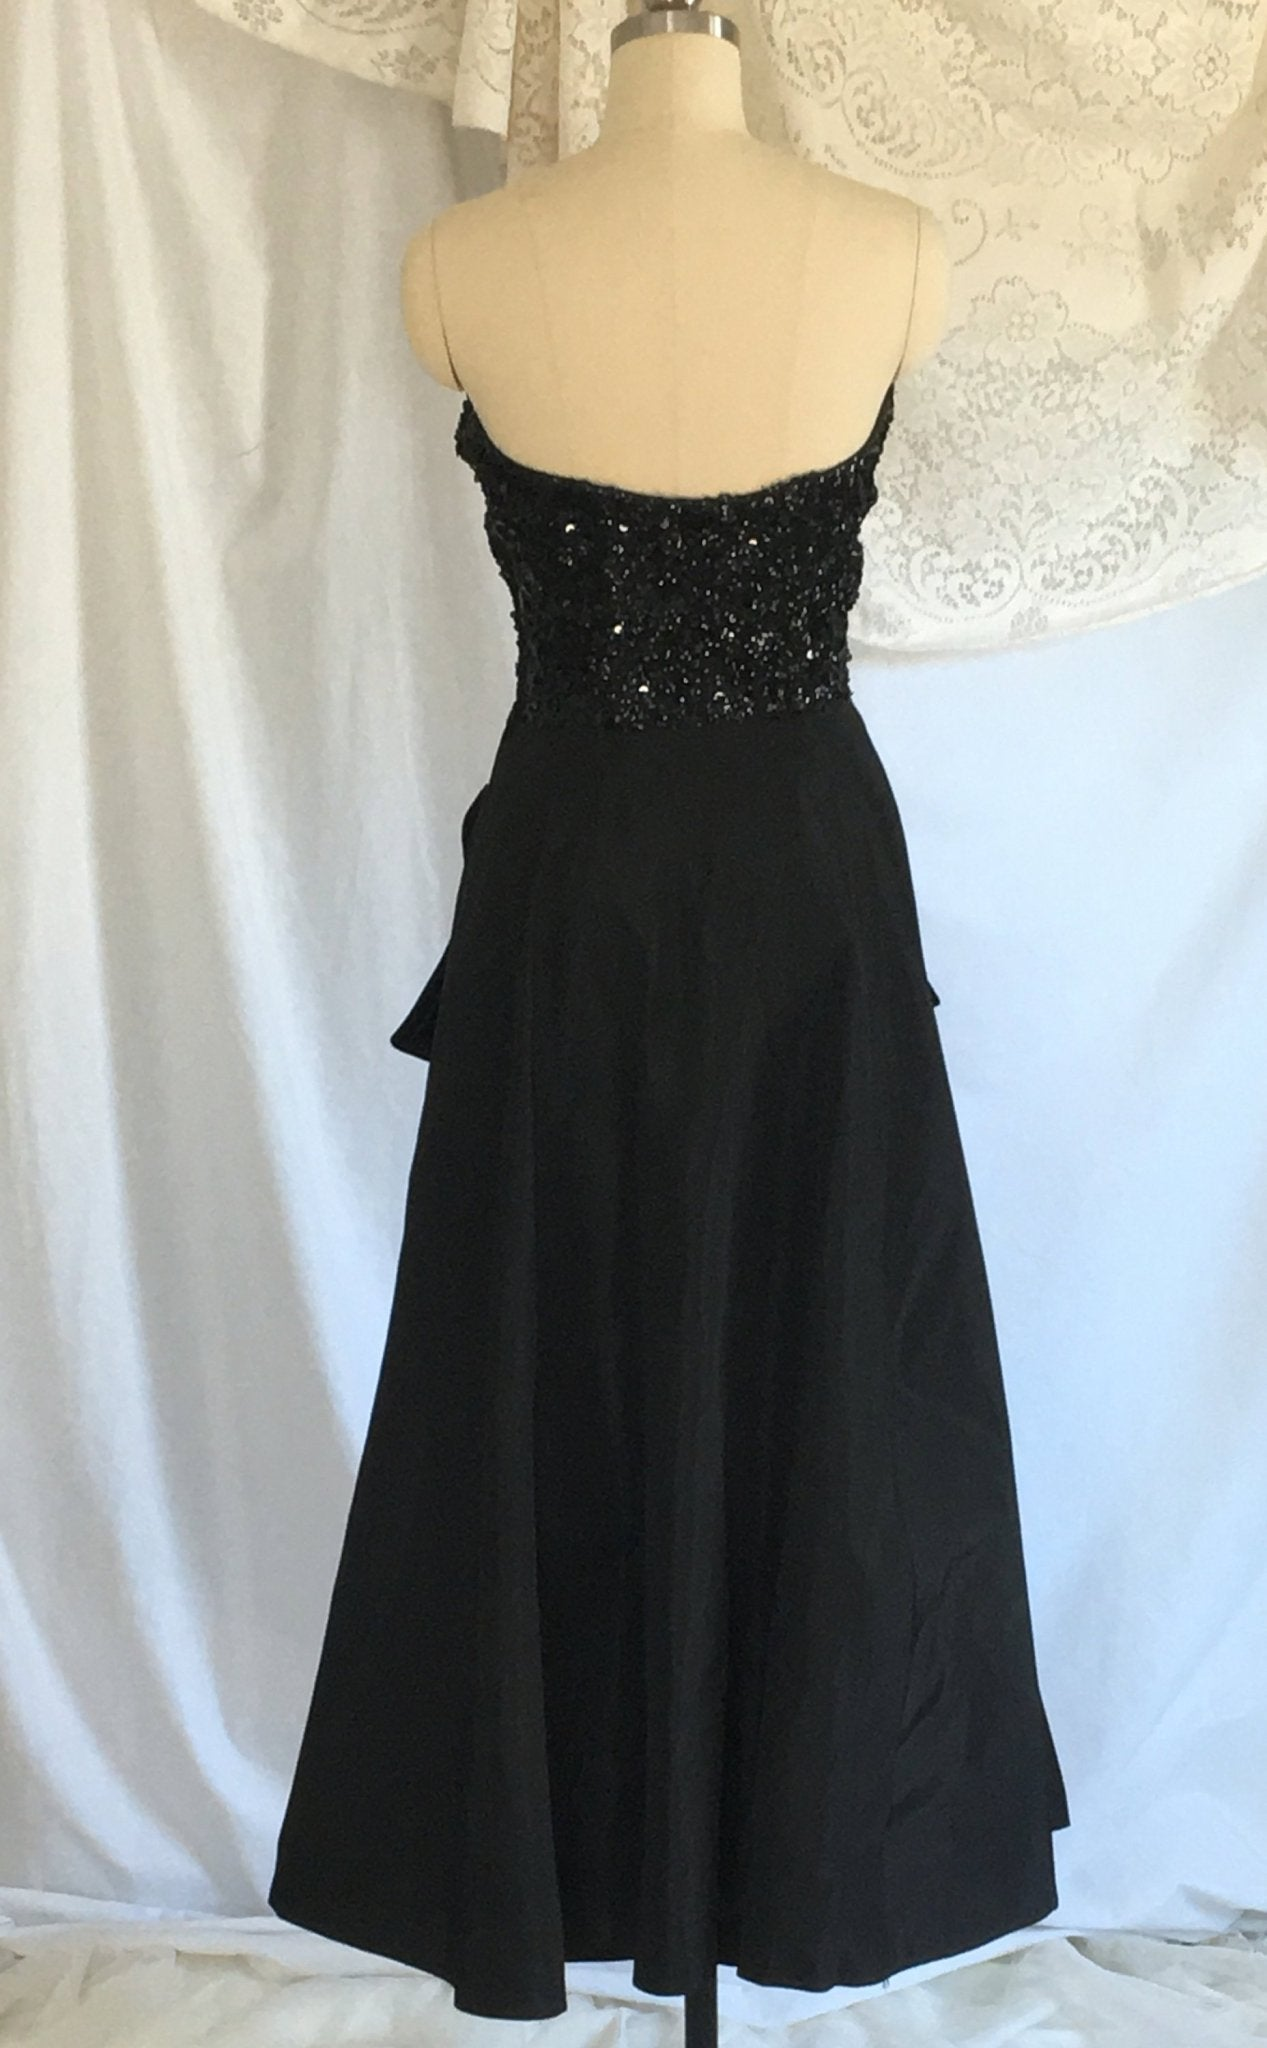 Vintage 1940s's Dress | Black Sequined Bodice &Taffeta | Strapless Evening Gown | Prom Dress | Jack Herzog | Size XS - Daggers & Dames